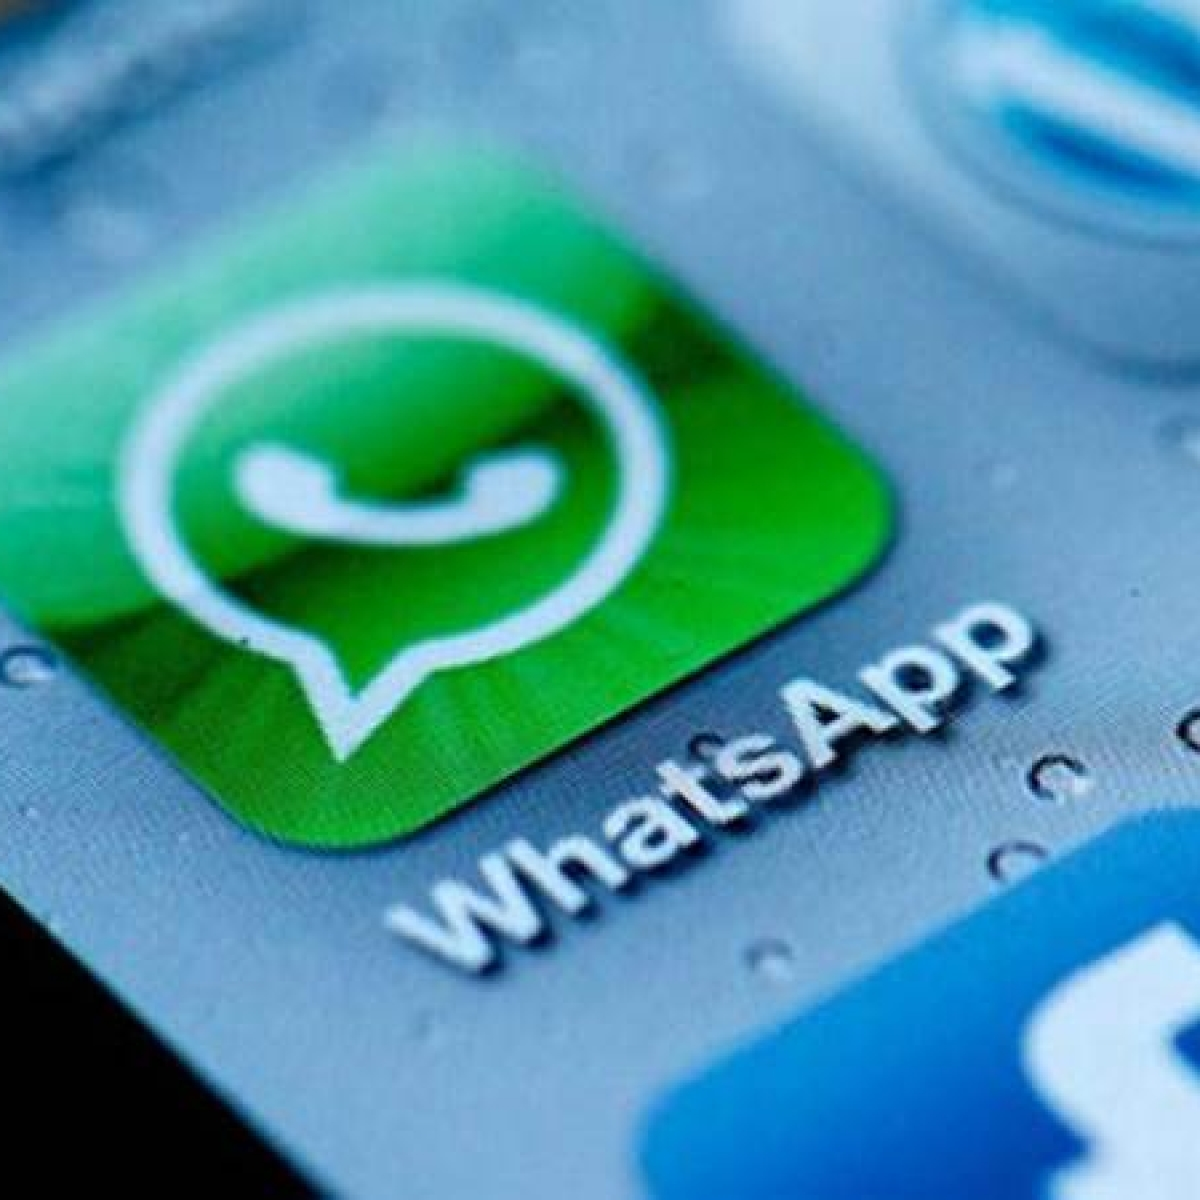 'Notified relevant Indian government authorities about security issue in May':WhatsApp on snooping row